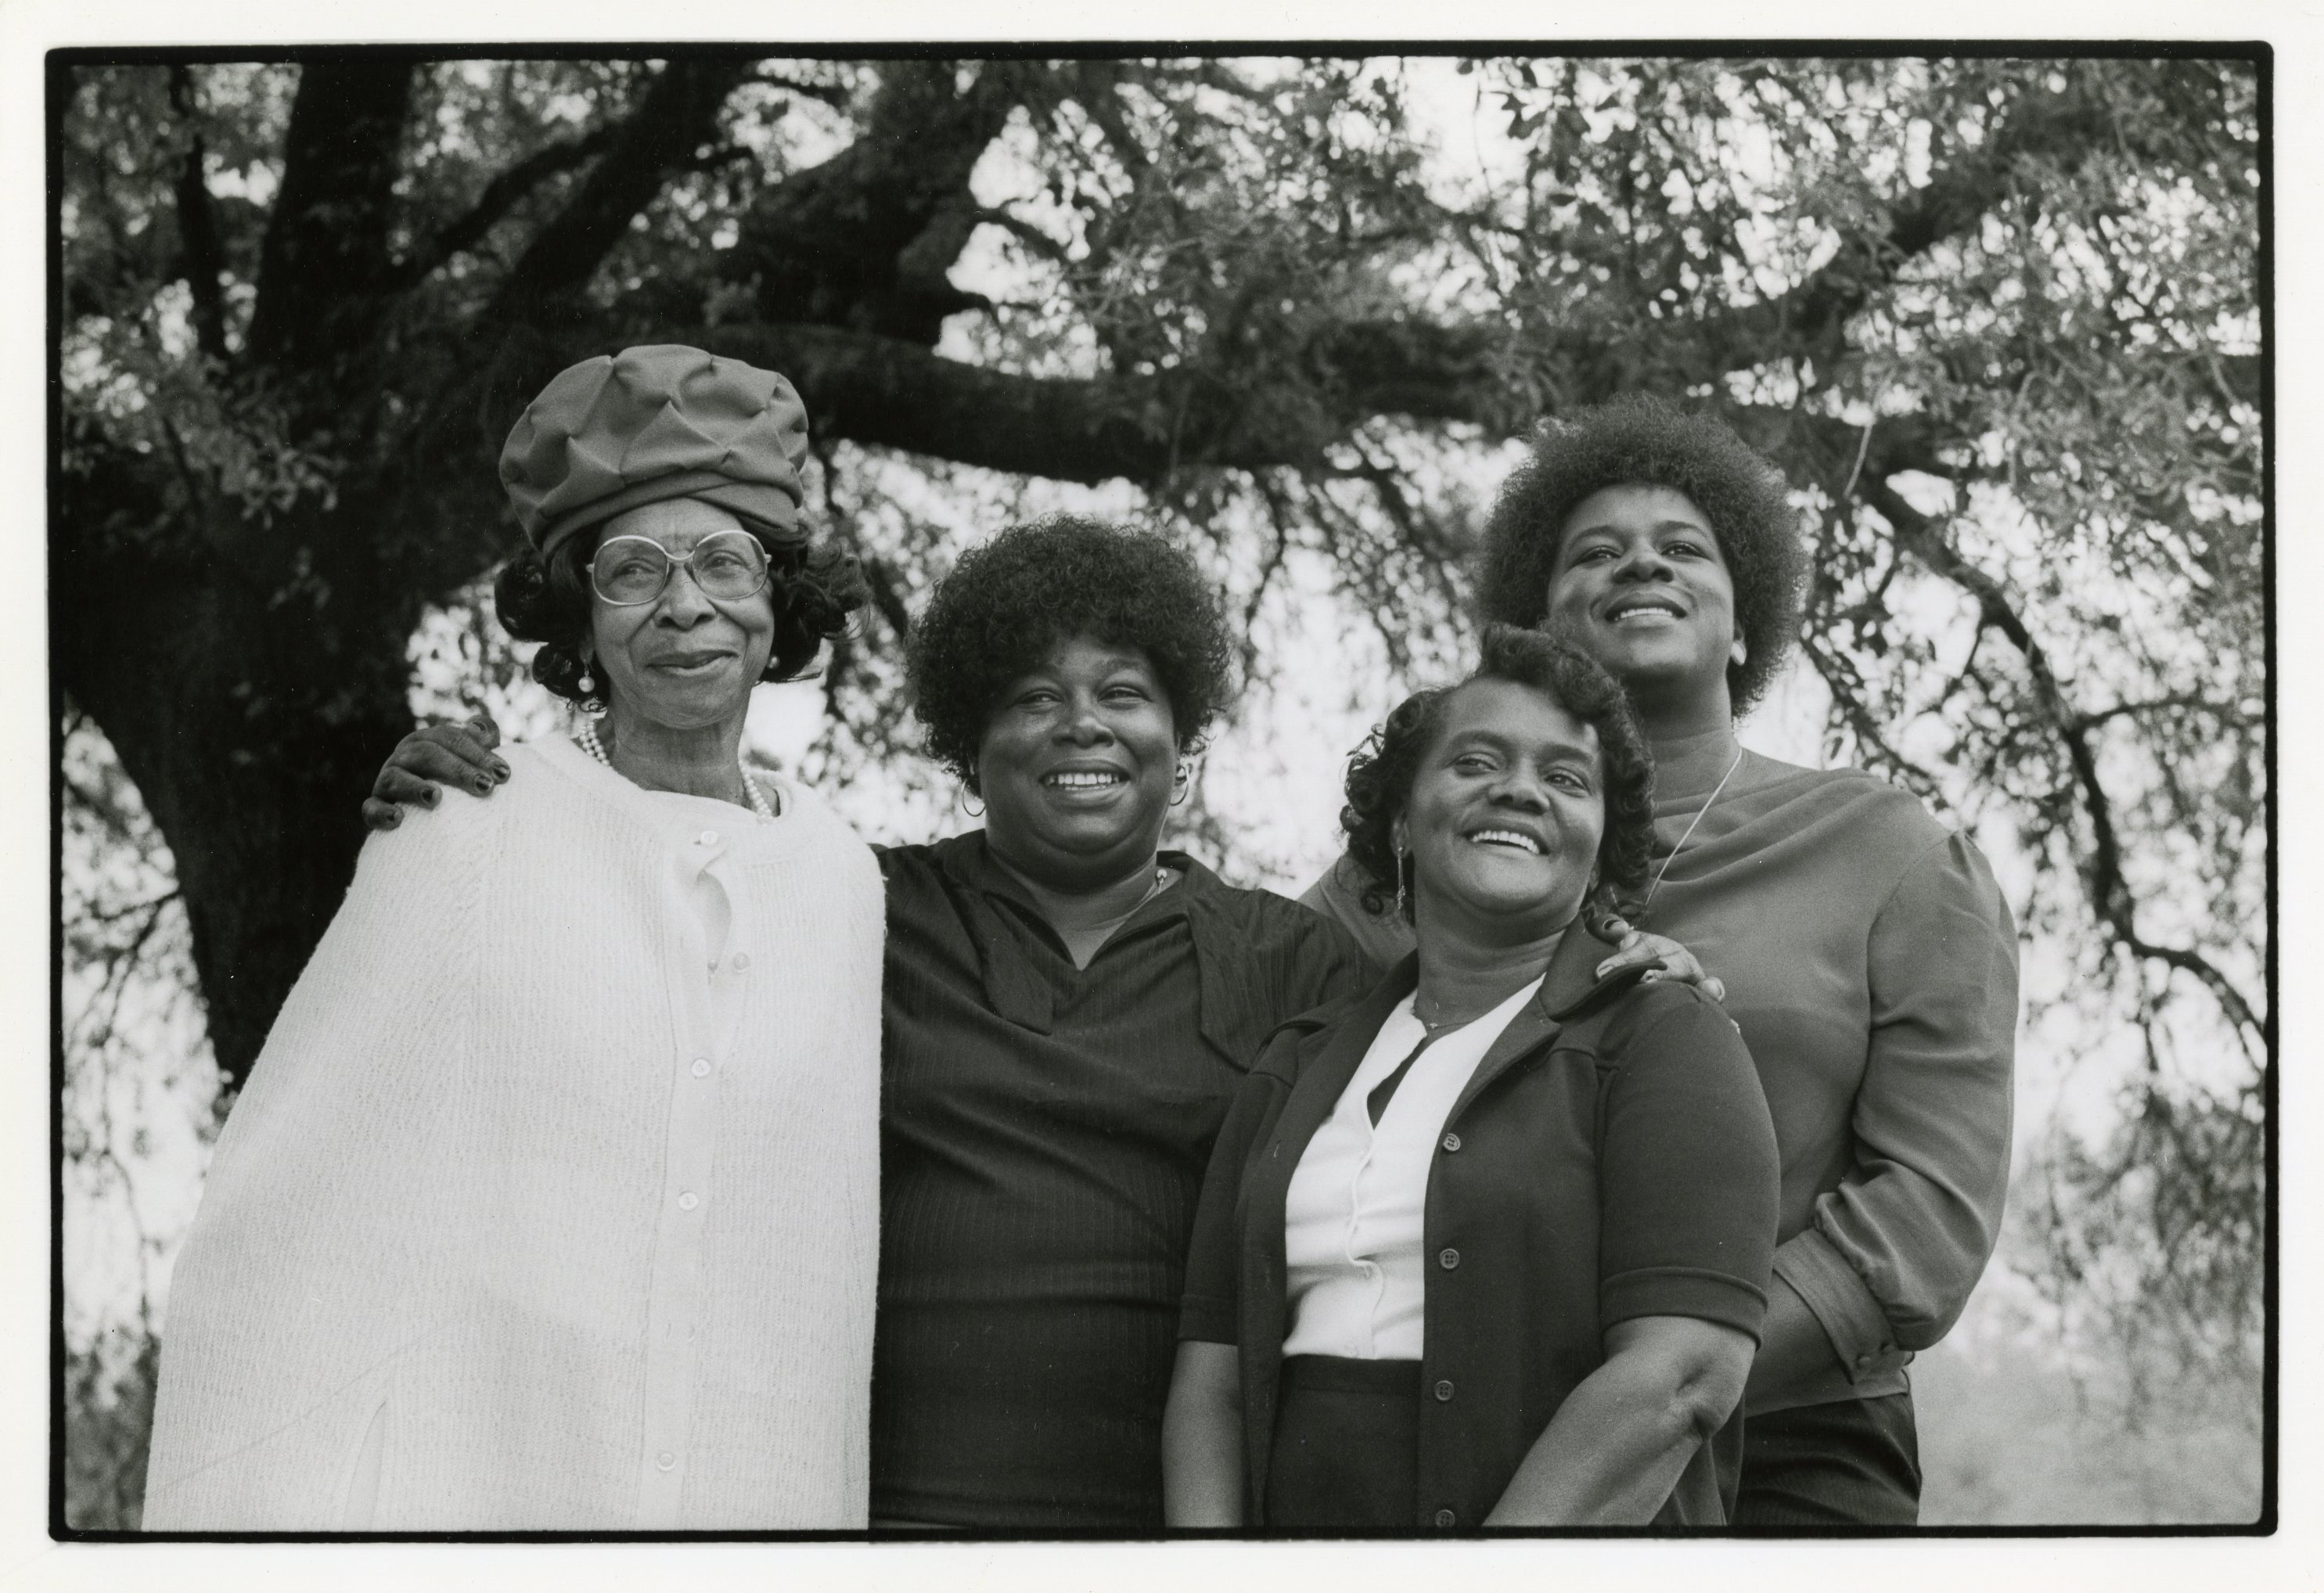 Members of the Moving Star Hall Singers, Ruth Bligen, Janie Hunter, Bertha Smith, Mary Pinckney. photo by Wade Spees. 20008_PF20008_13